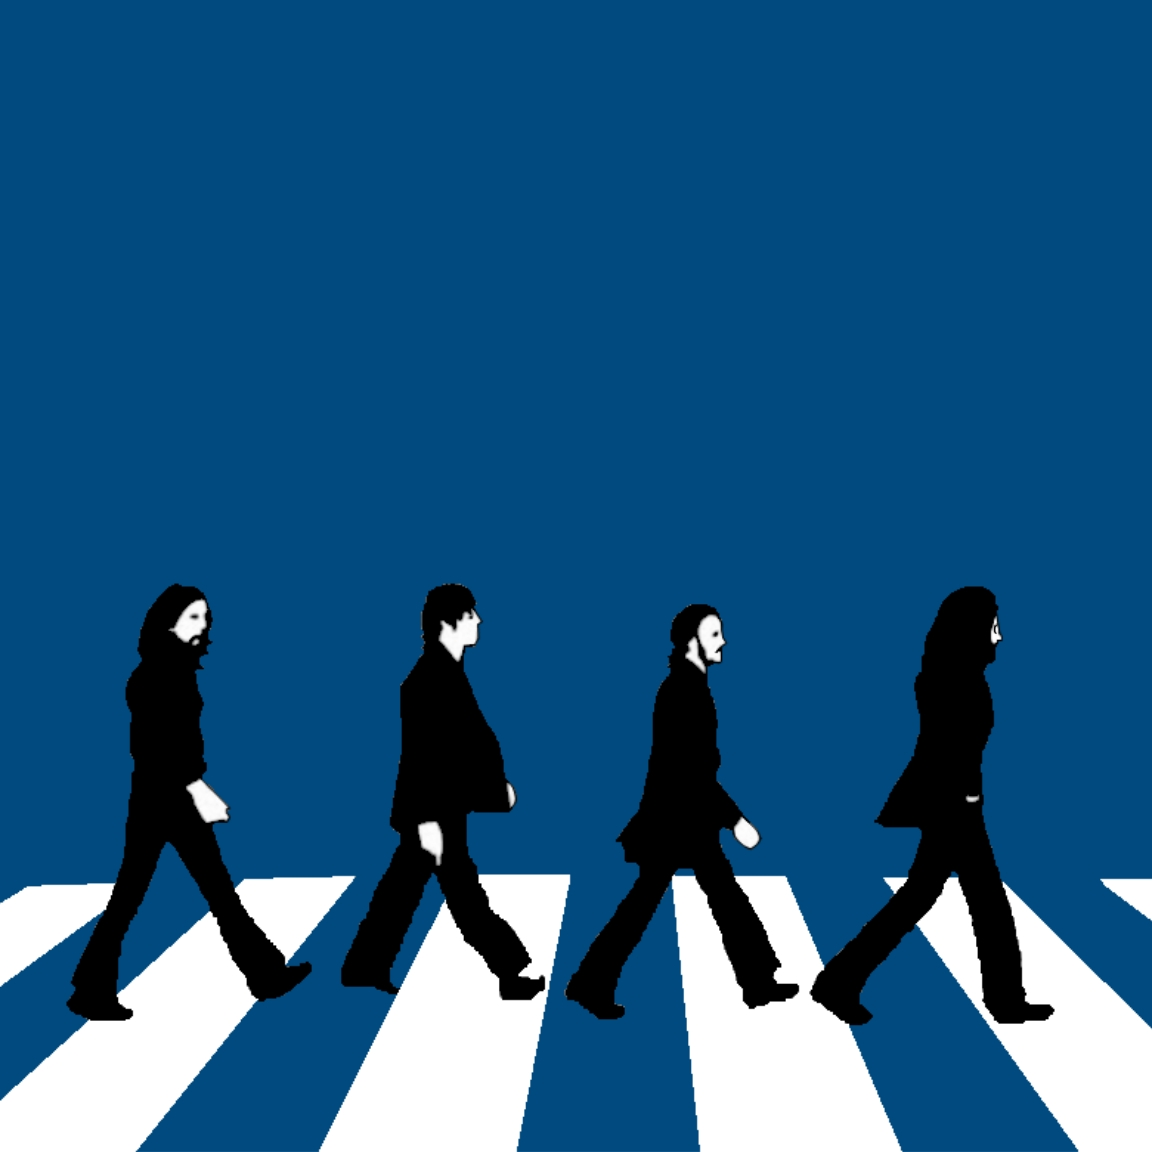 1152x1152 The Beatles Abbey Road Graphic Variations On Famous Artworks